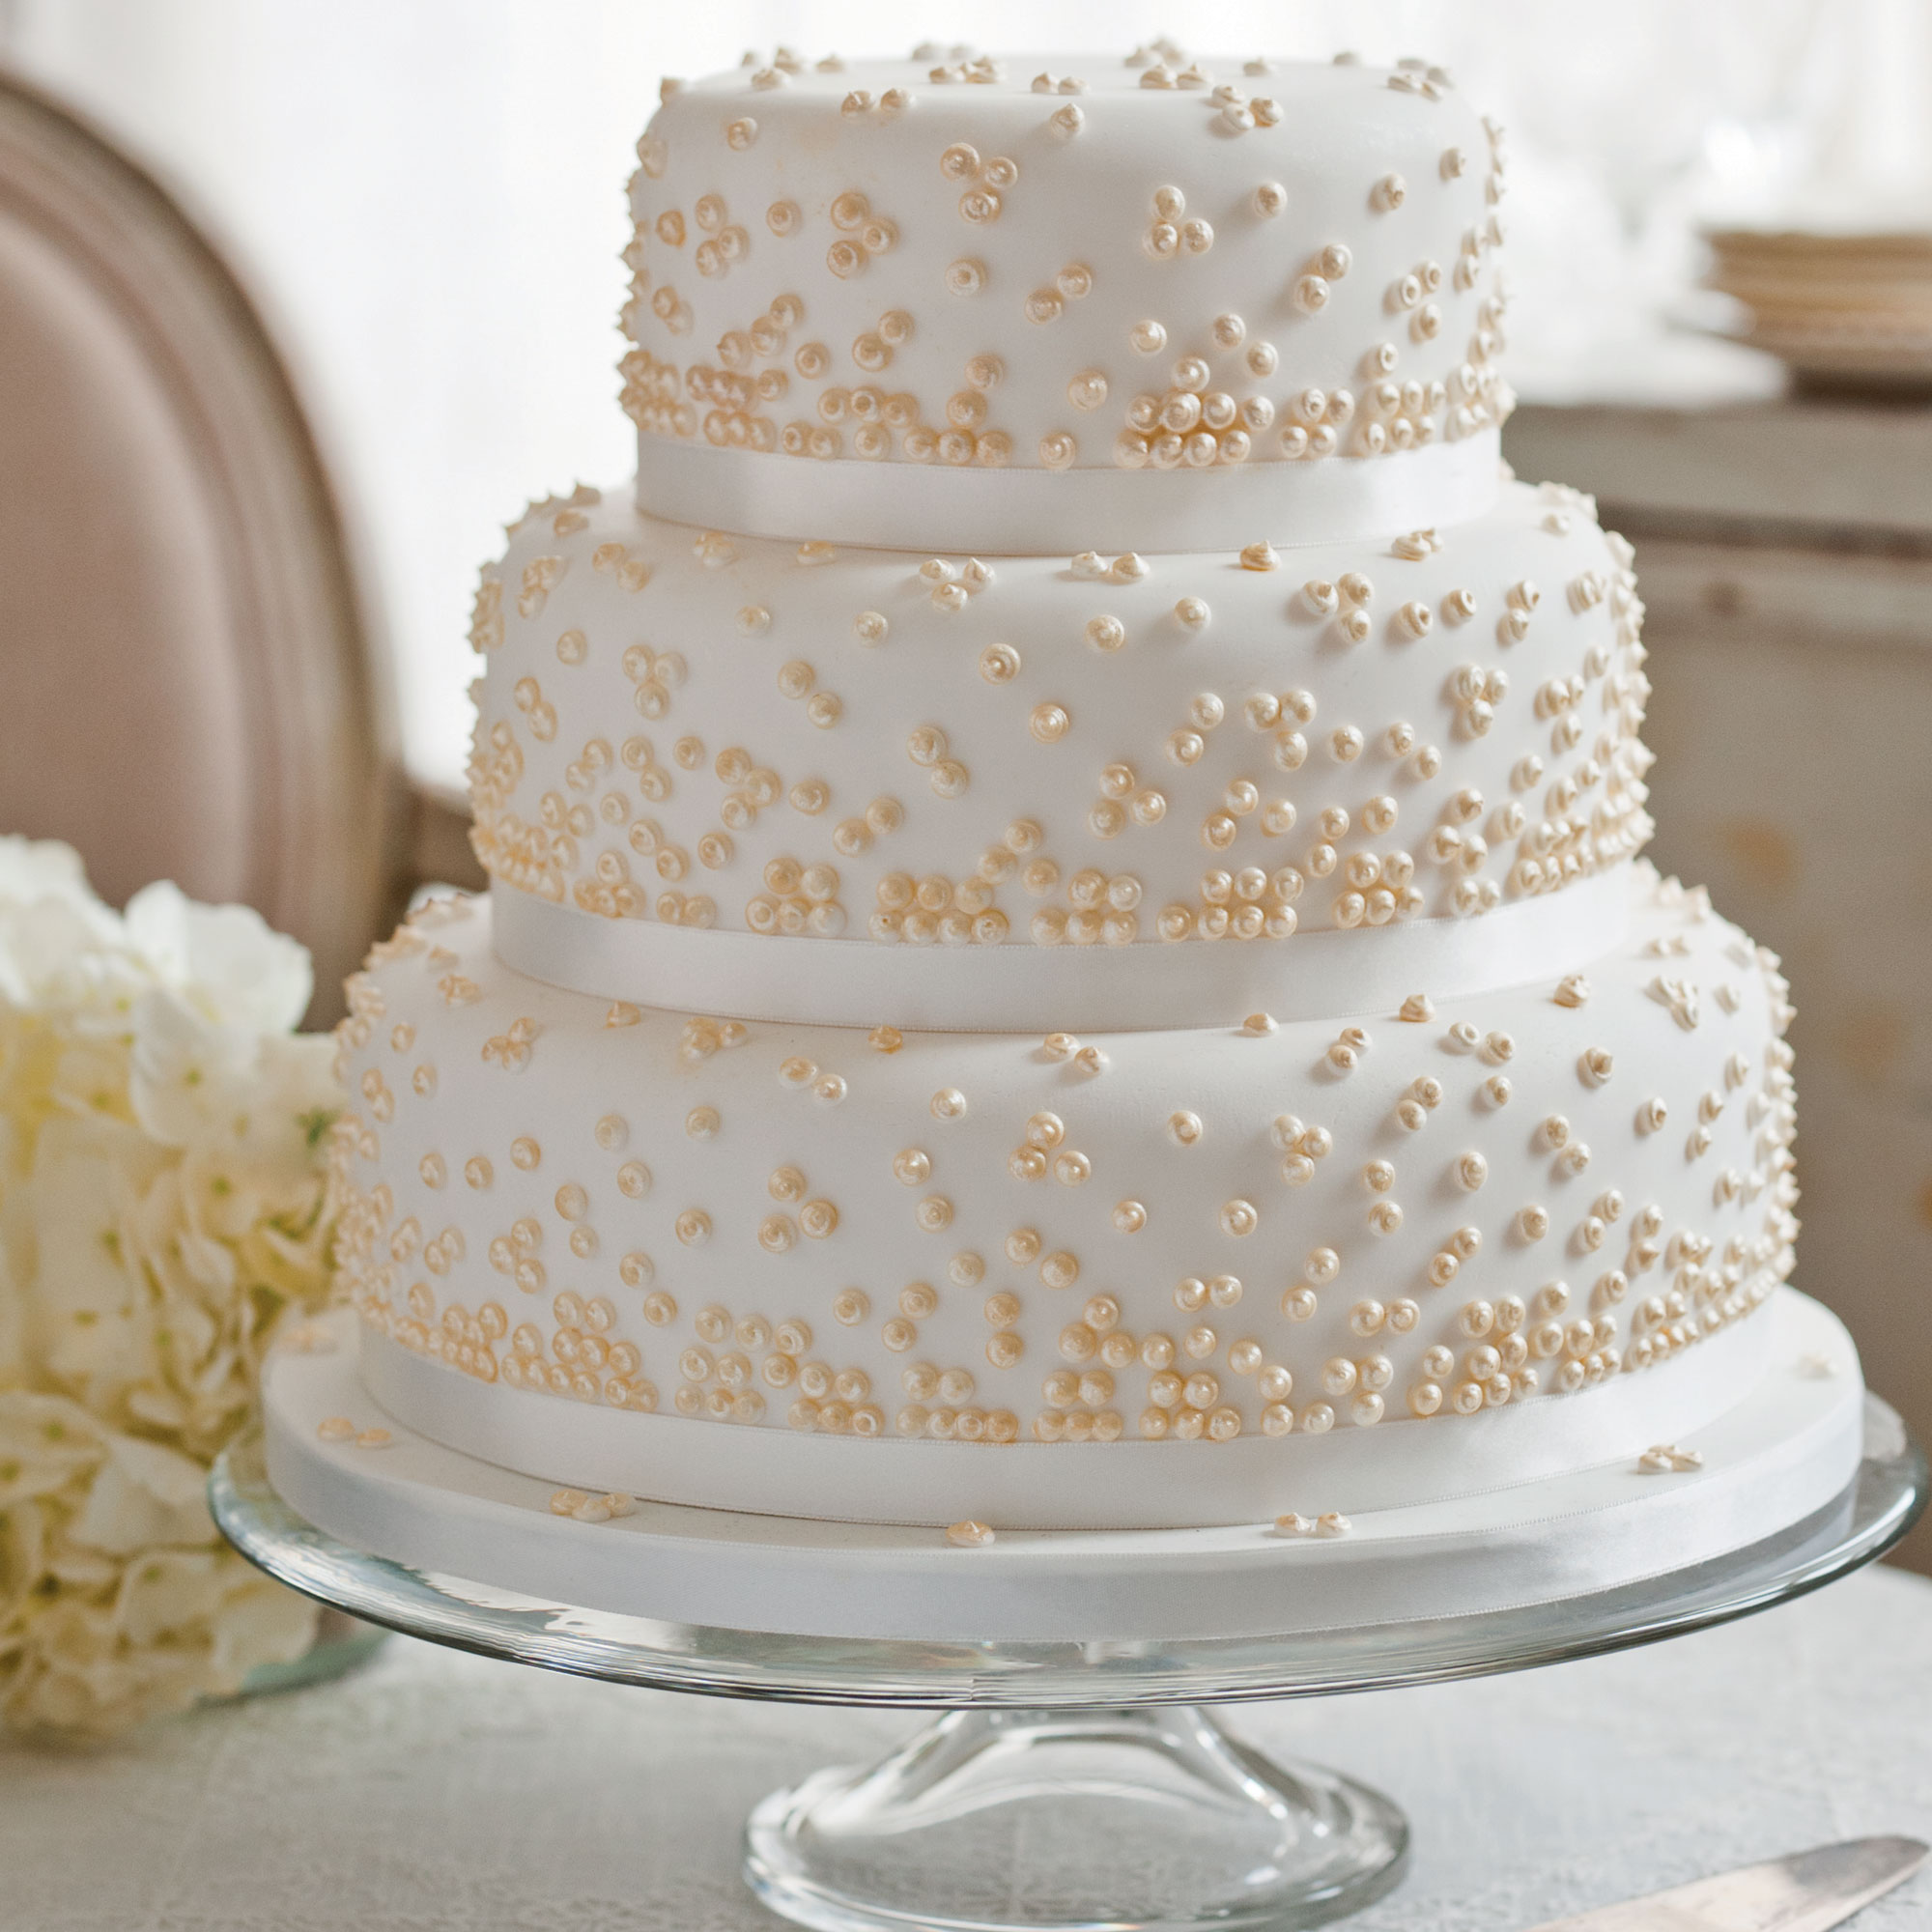 3 tier vanilla wedding cake recipe grace wedding cake 10273